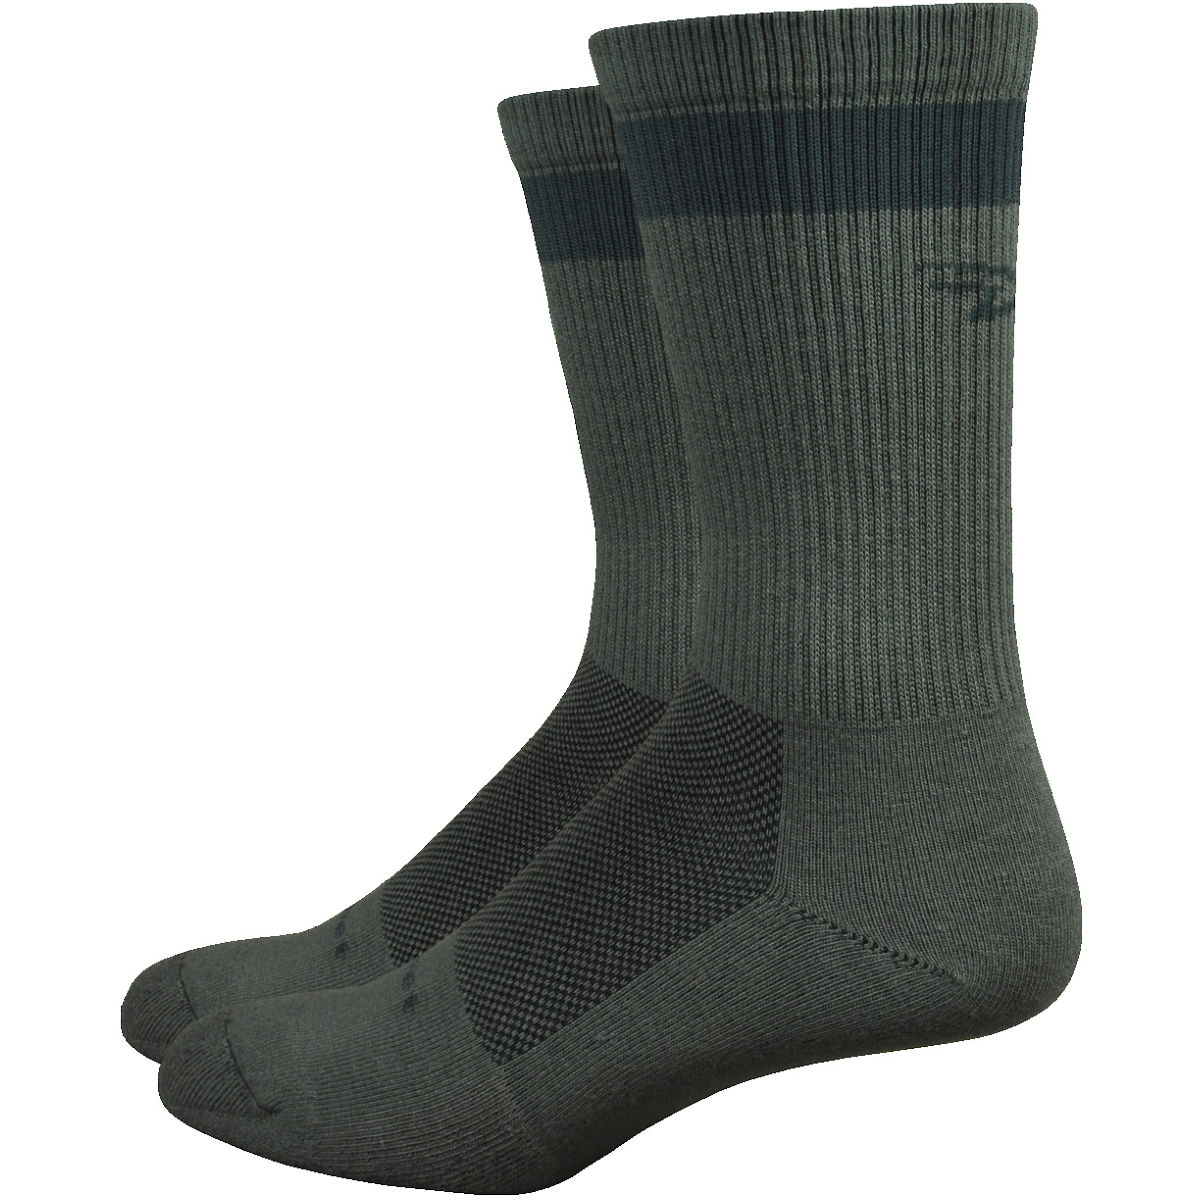 "DeFeet DeFeet Levitator Trail 6"" Dirtbagger Socks   Socks"